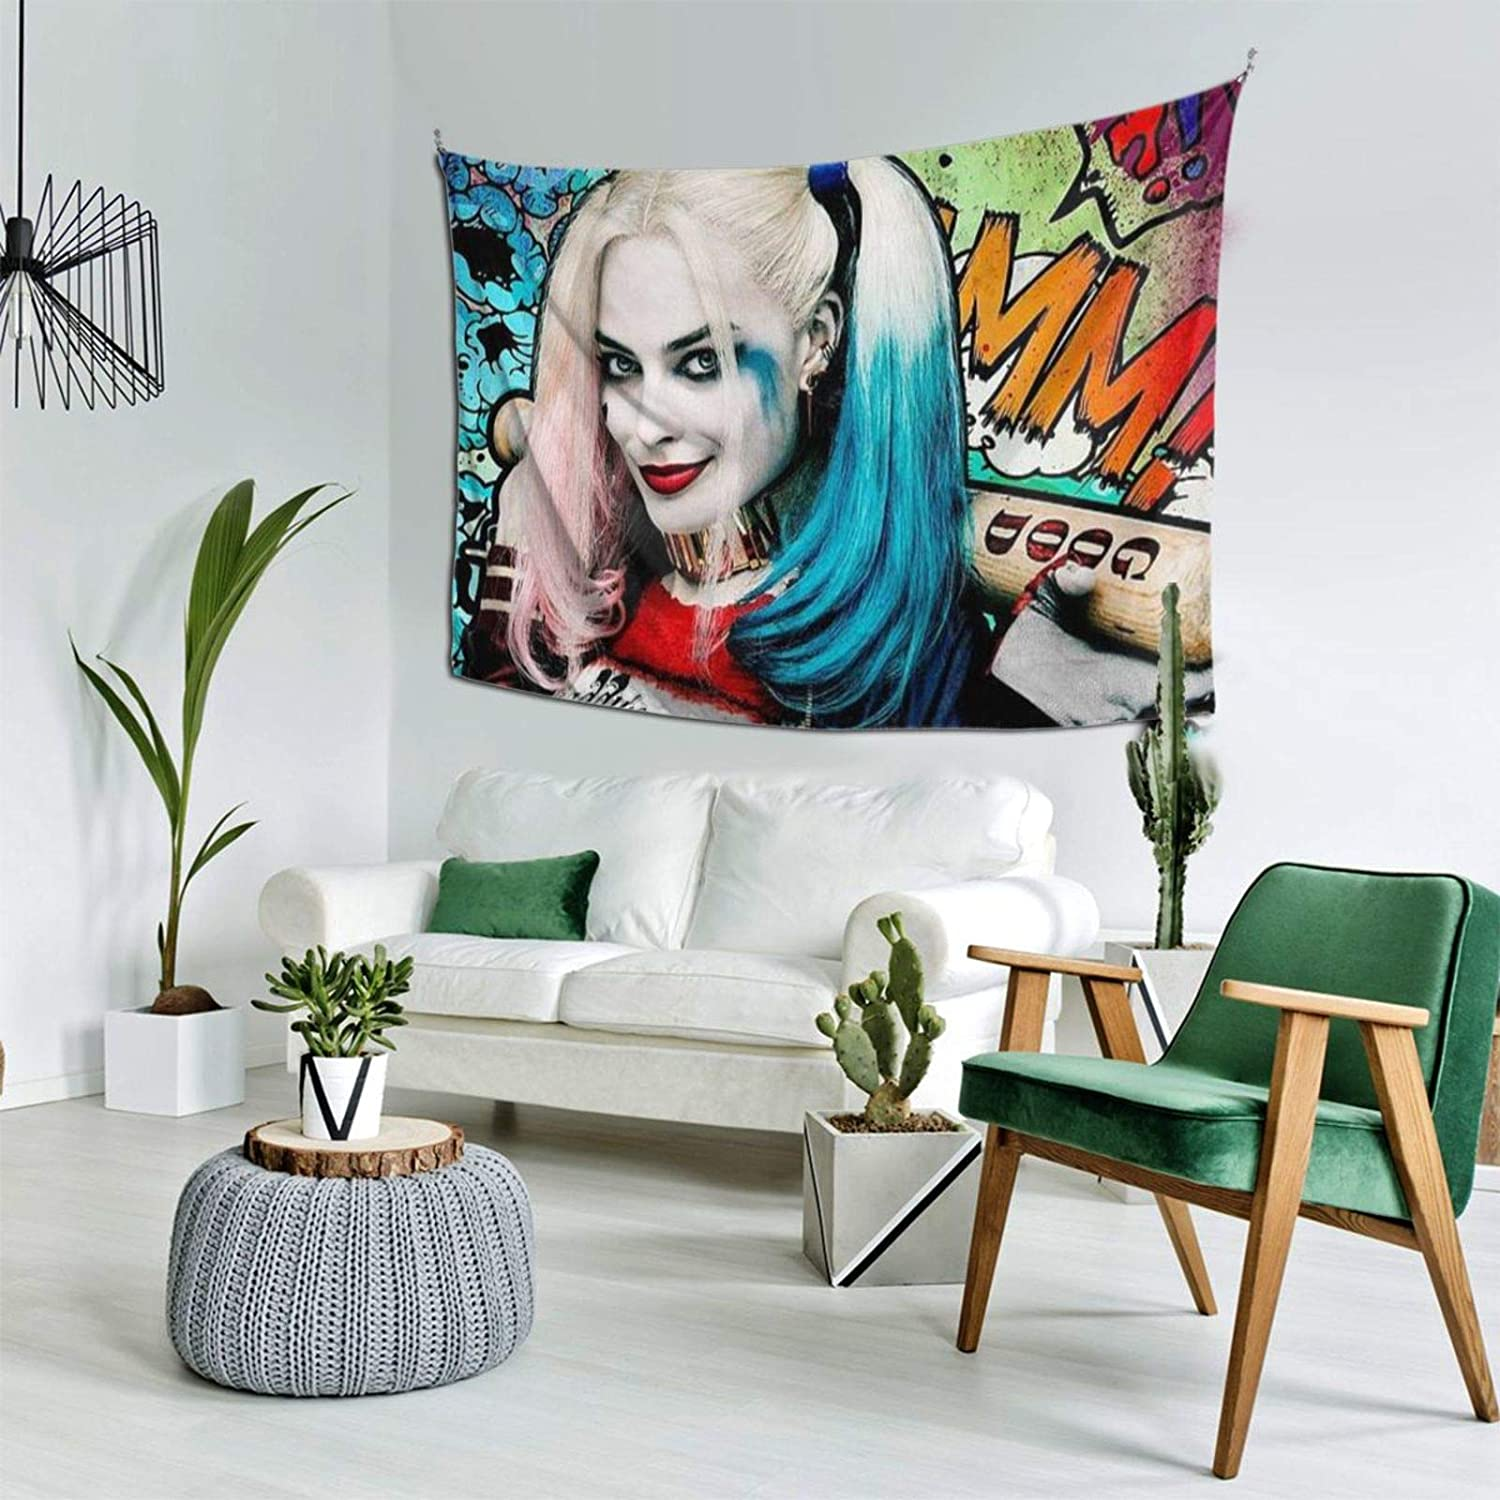 Harley Qui-nn Tapestry Wall Hanging,Anime Tapestry,Tapestry for Bedroom Aesthetic, Art Home Decoration Bedroom Decor Living Room Door Curtain 60x40inch